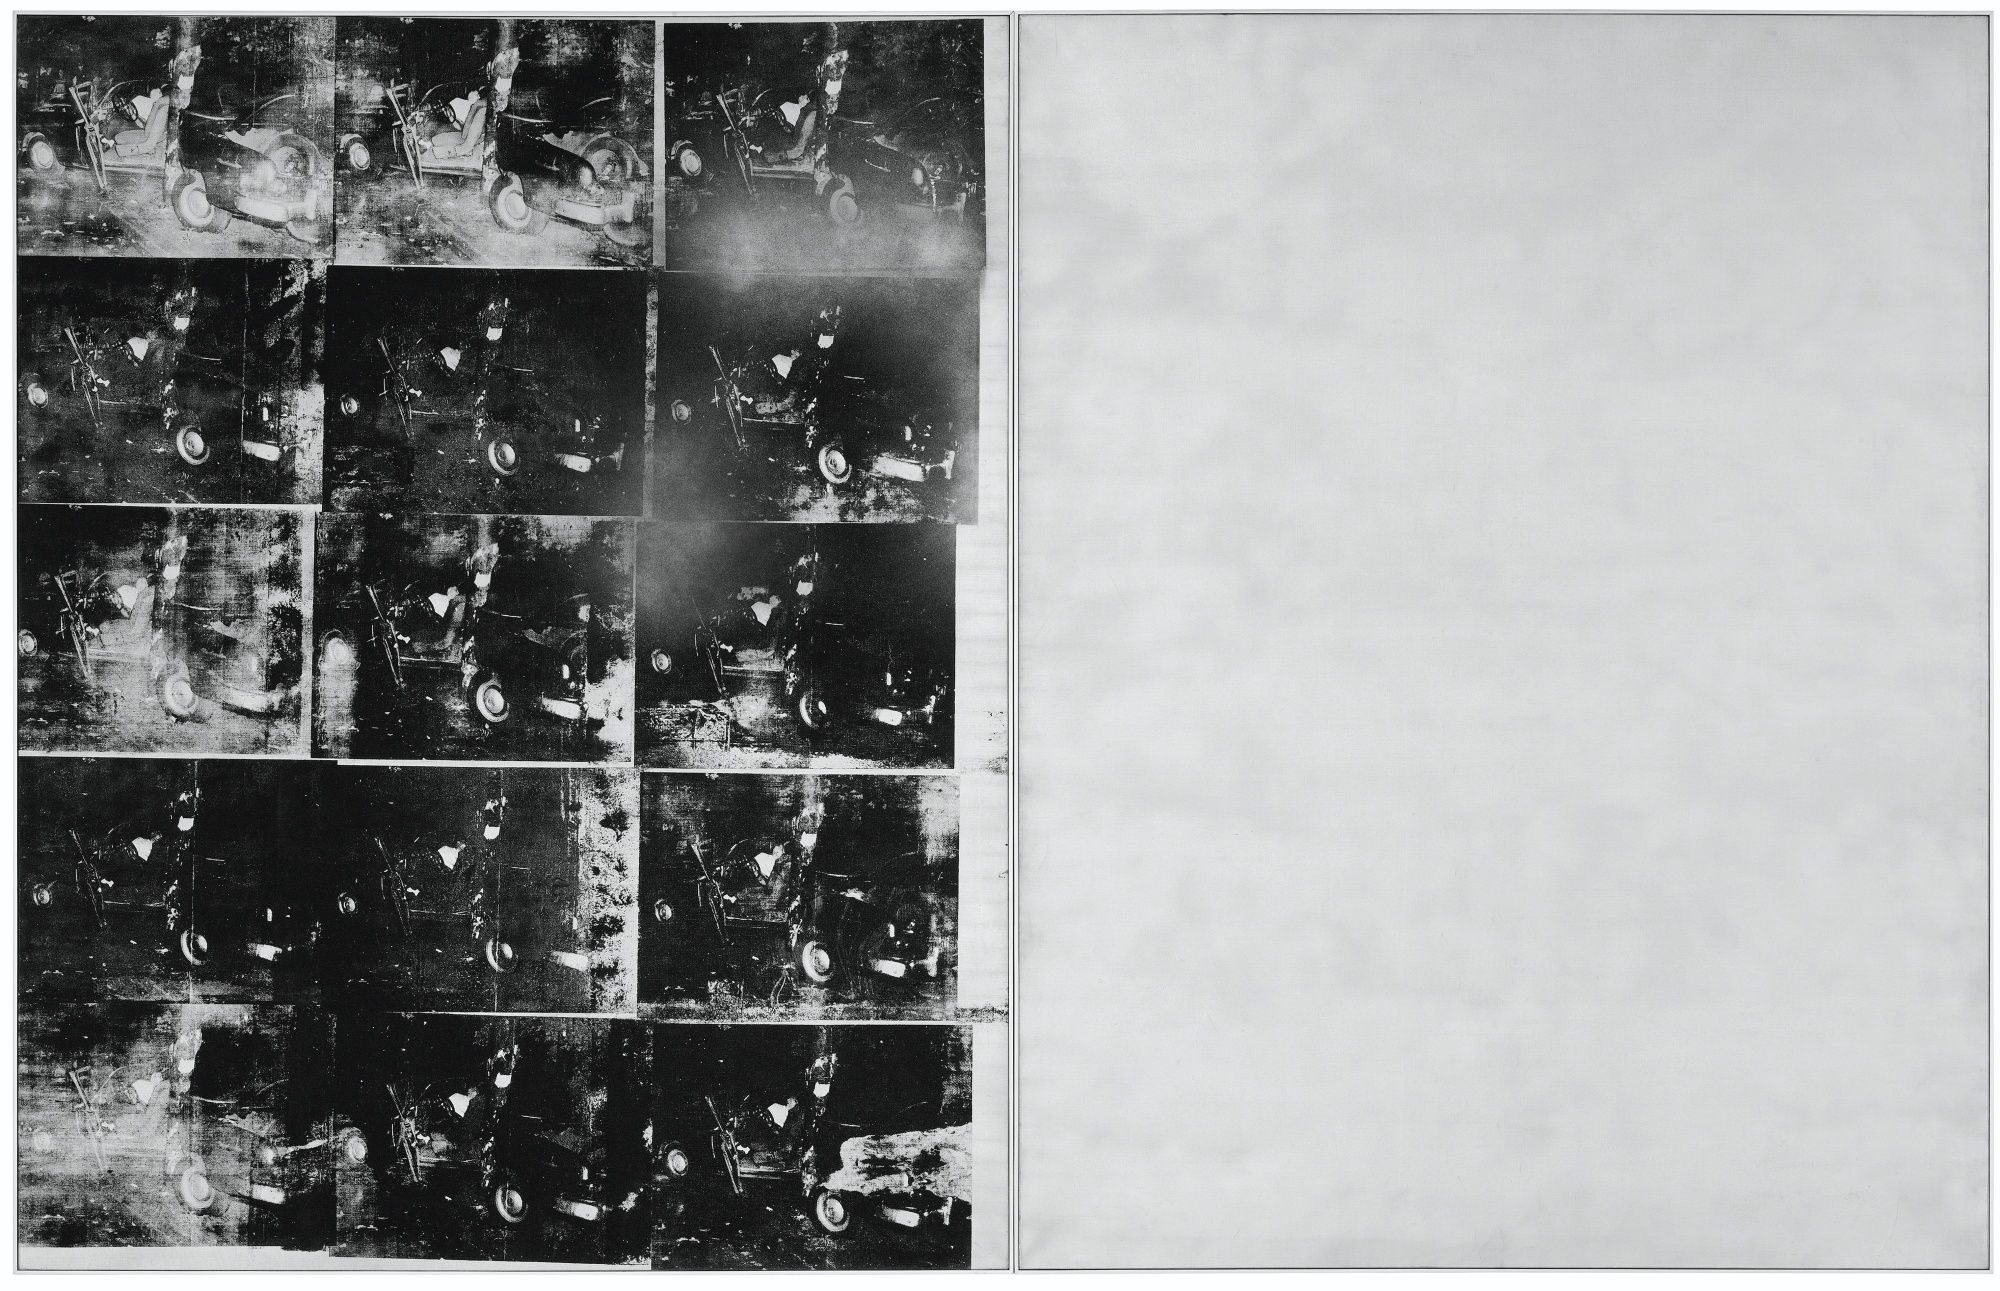 Andy Warhol Silver Car Crash (Double Disaster) 1963